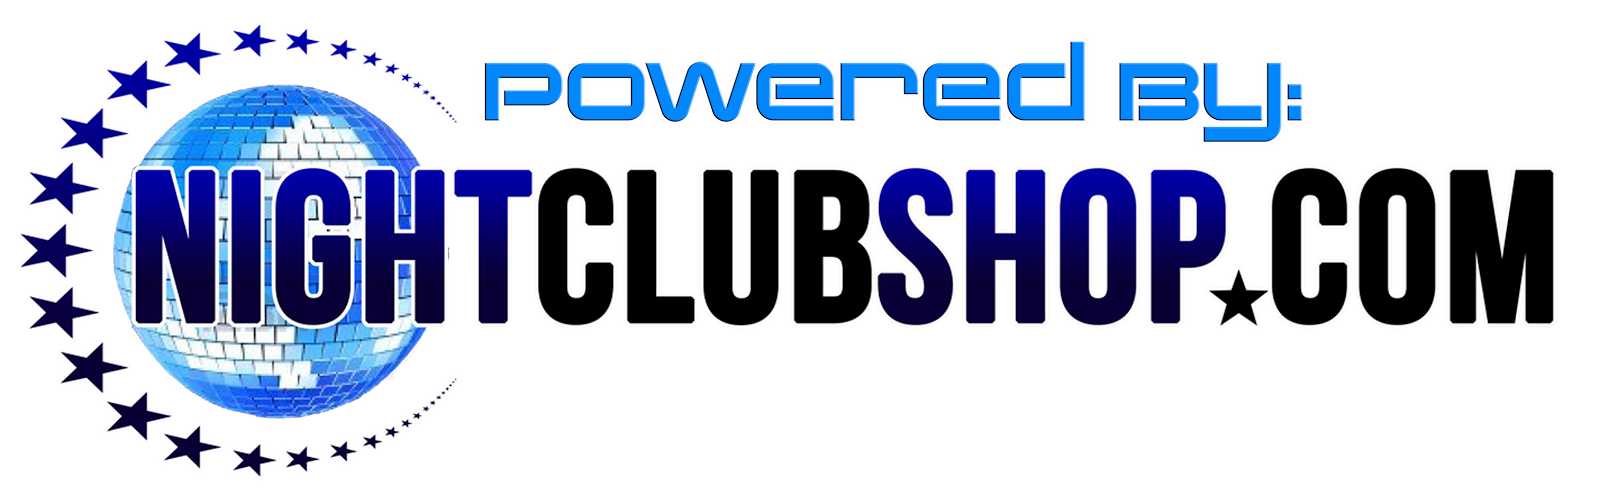 poweredbynightclubshop-solo.png